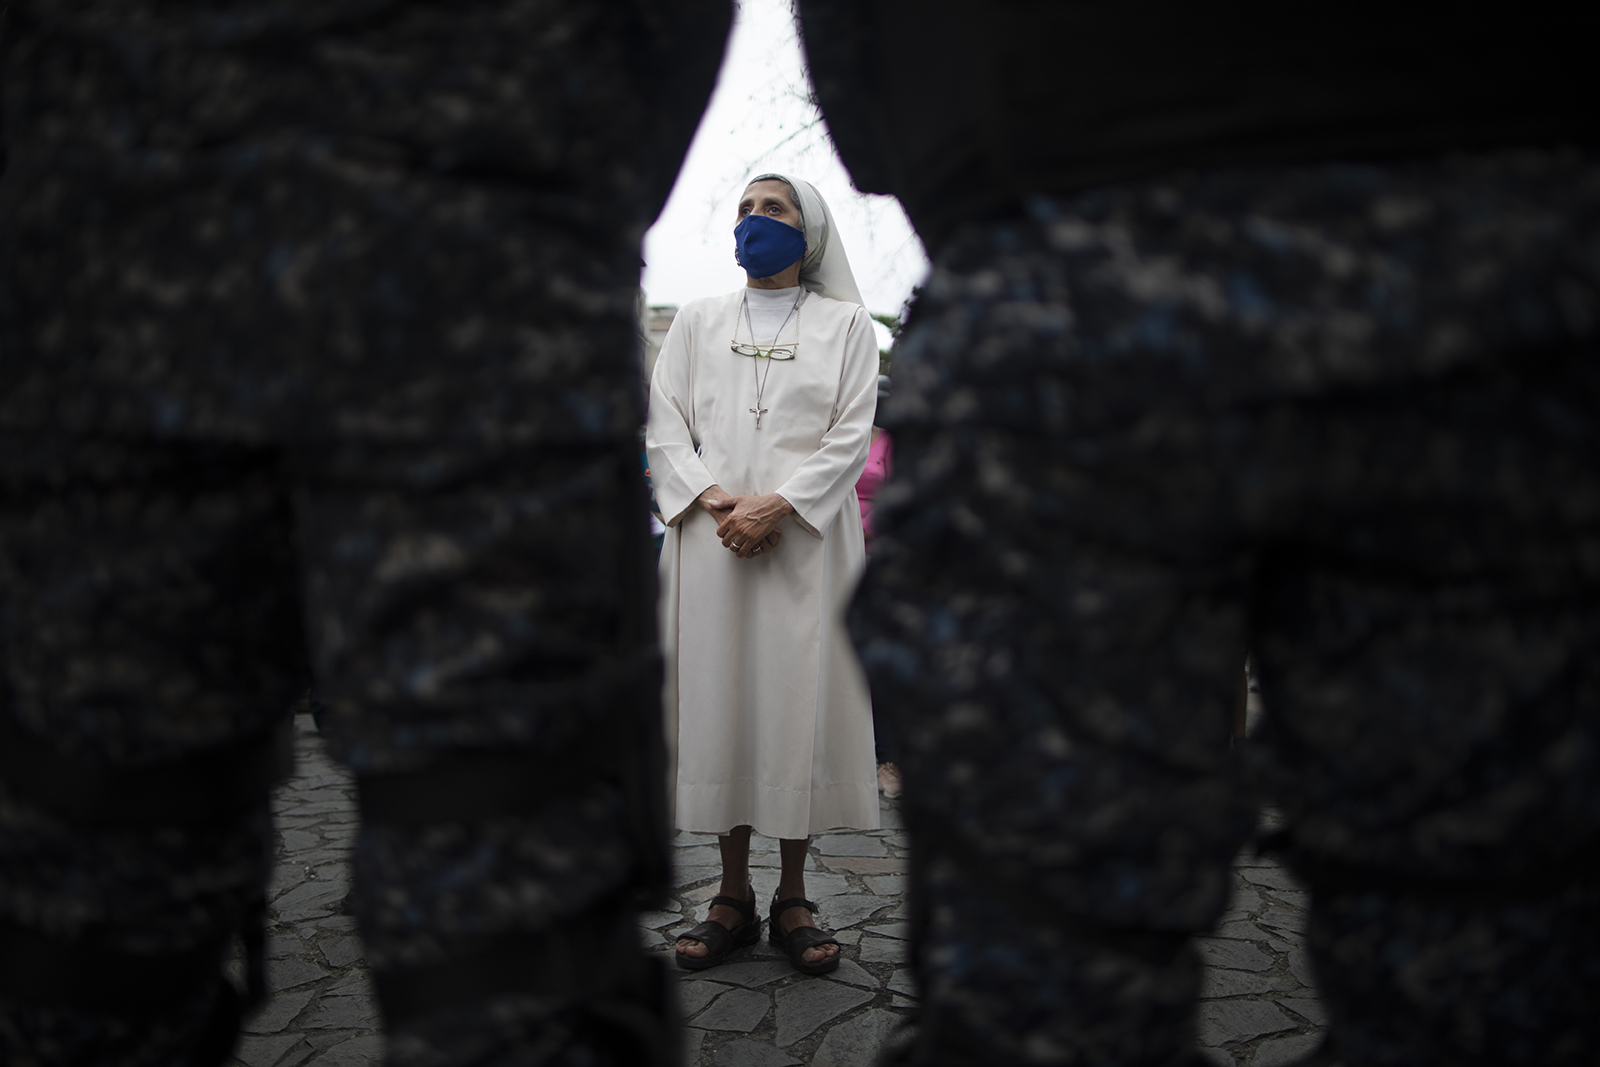 """A nun stands behind police creating a perimeter for a Holy Week procession by devotees of the """"Nazareno de San Pablo"""" statue of Jesus before it passes through in a popemobile amid the COVID-19 pandemic in Caracas, Venezuela, Wednesday, March 31, 2021. The annual procession wasn't allowed for the second year in a row to help contain the spread of the new coronavirus. (AP Photo/Ariana Cubillos)"""